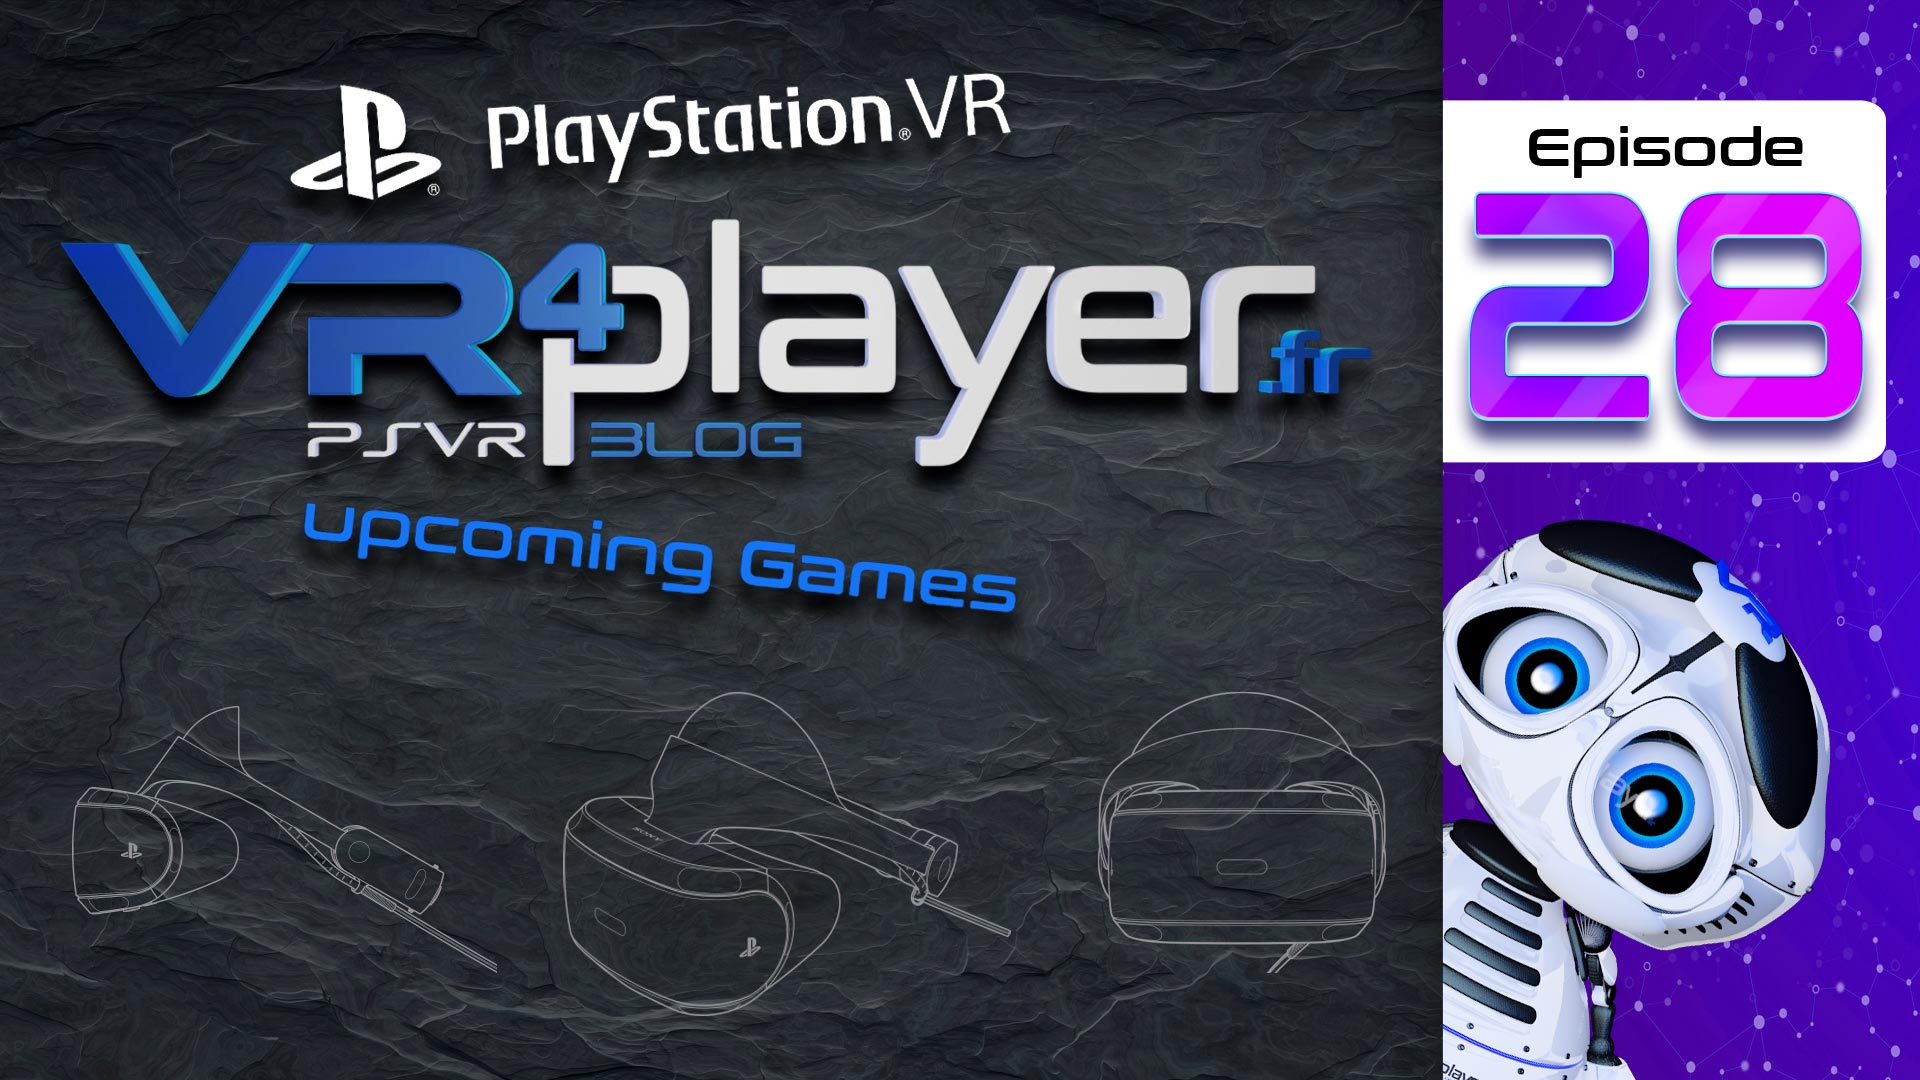 PlayStation VR Upcoming Games VR4player Épisode 28